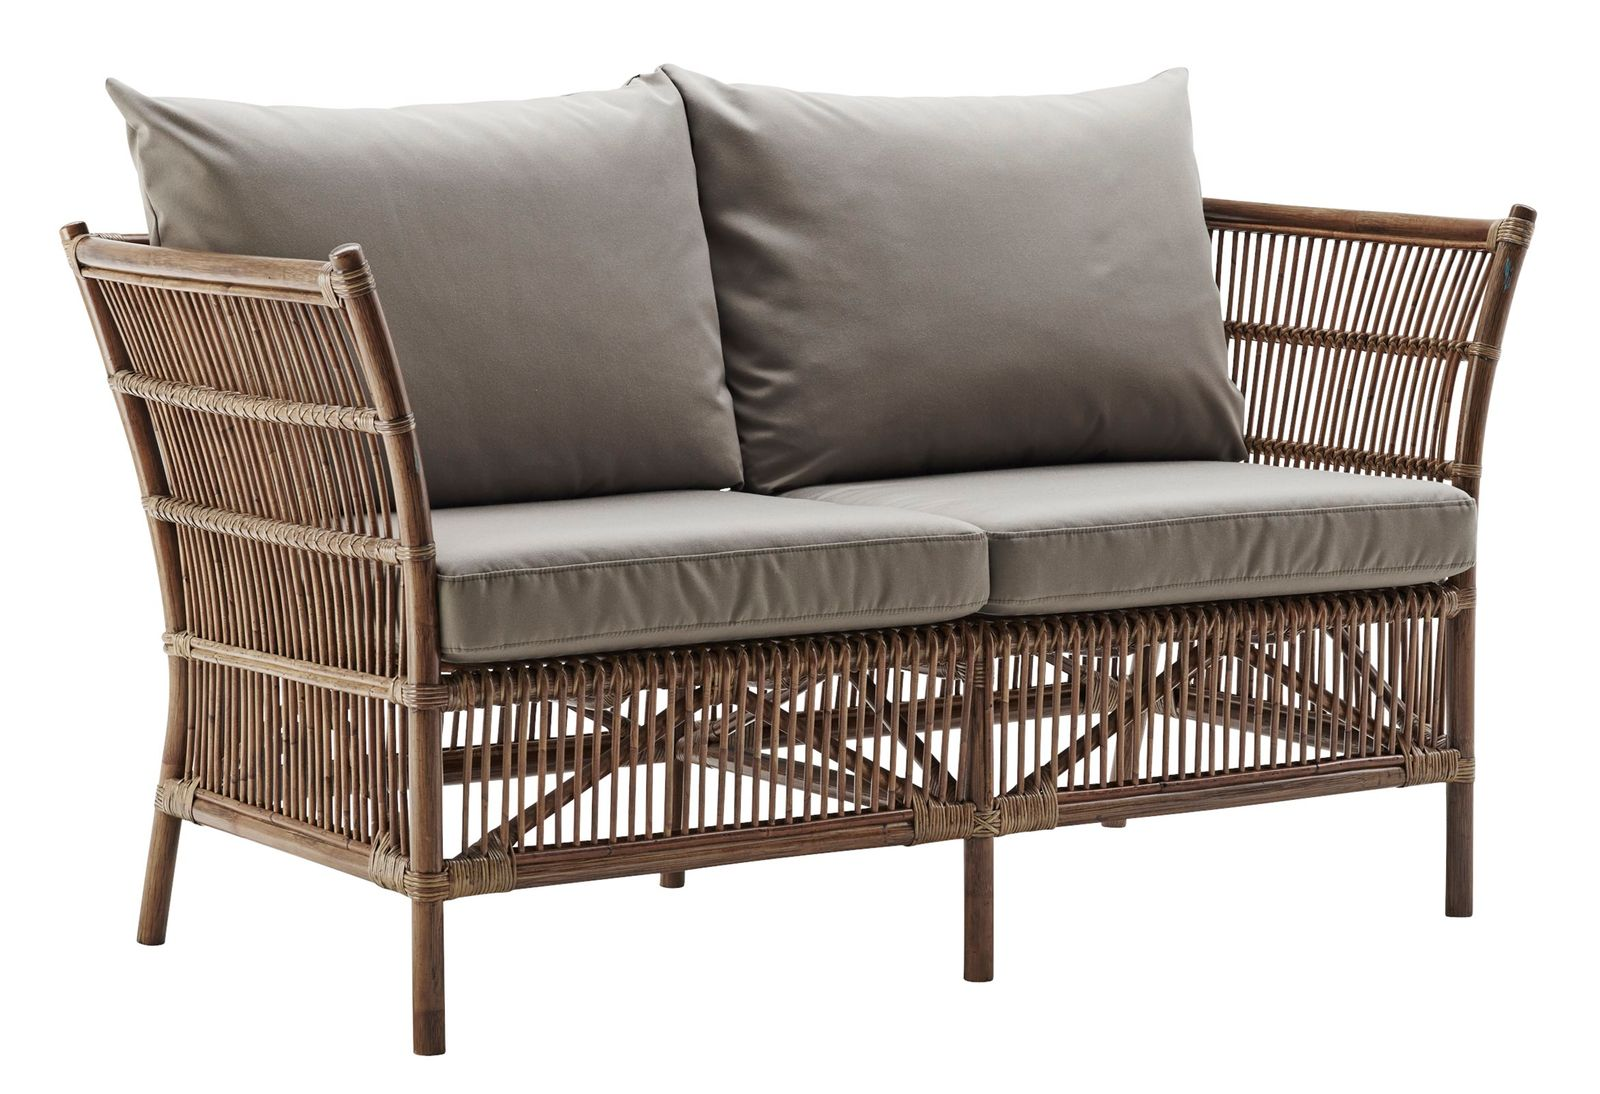 Full Size of Rattan Sofa Bed Australia Corner Indoor For Sale Davao Outdoor Cover Cheap Philippines Schweiz Couches Used Furniture Table Set Zweisitzer Leder Braun Mit Sofa Rattan Sofa